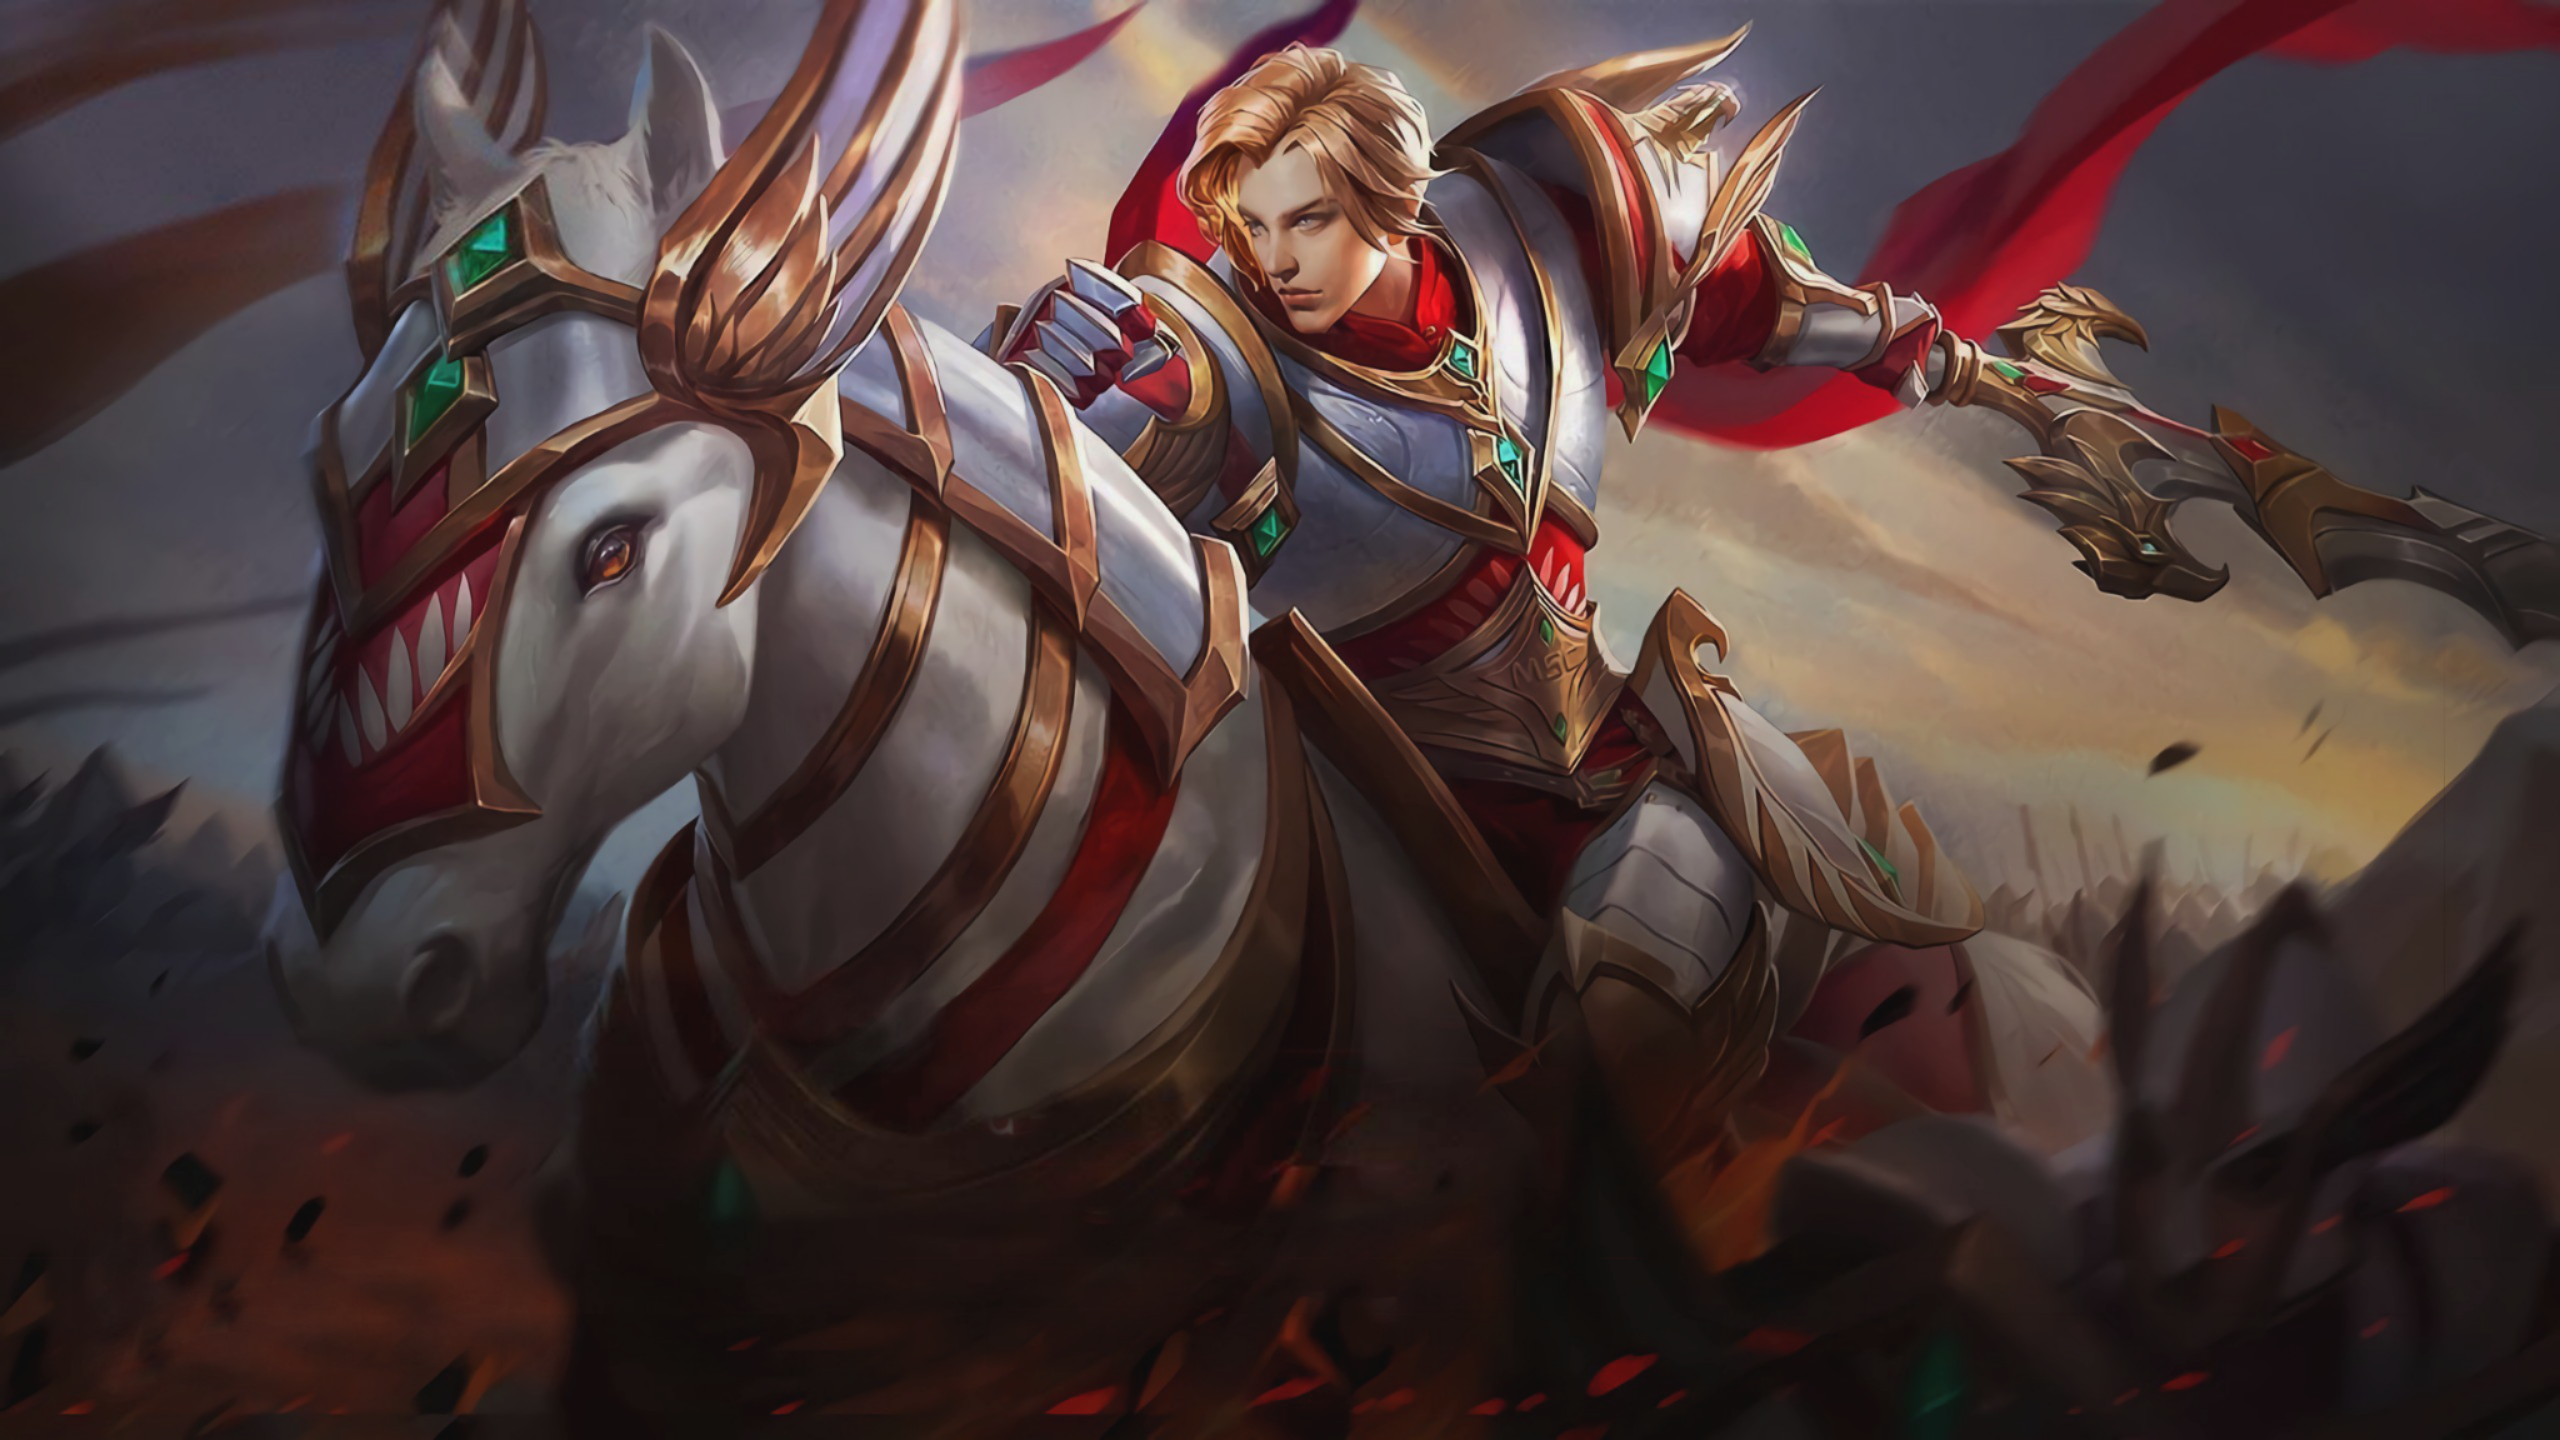 50 Mobile Legends Wallpaper HD Terbaru Dengan Hero Dan